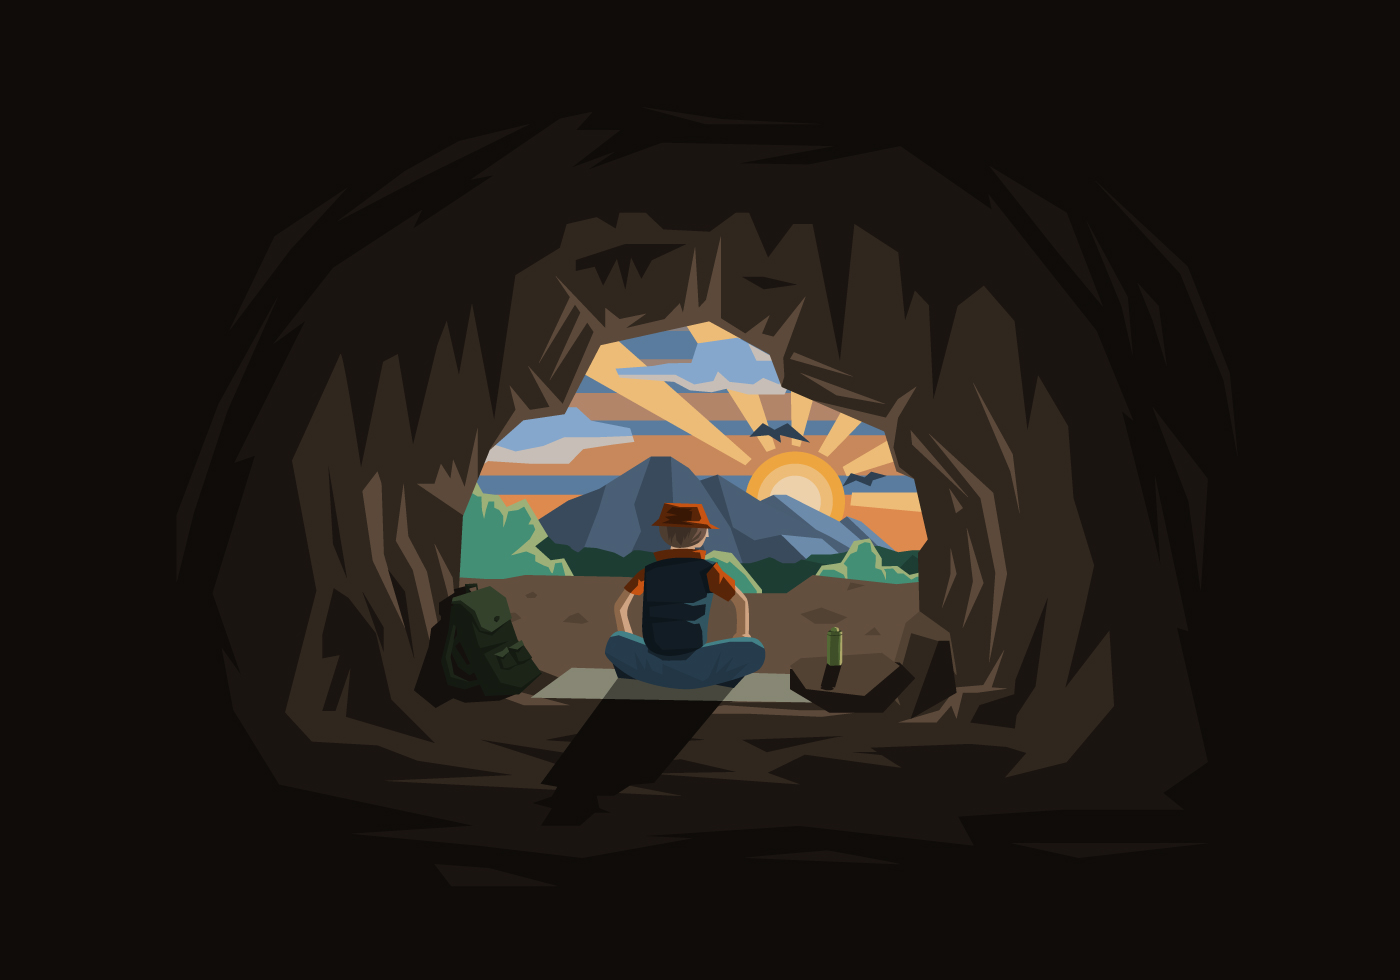 Free Vector Illustration Juniper: Cavern With A Man And Sunset Illustration